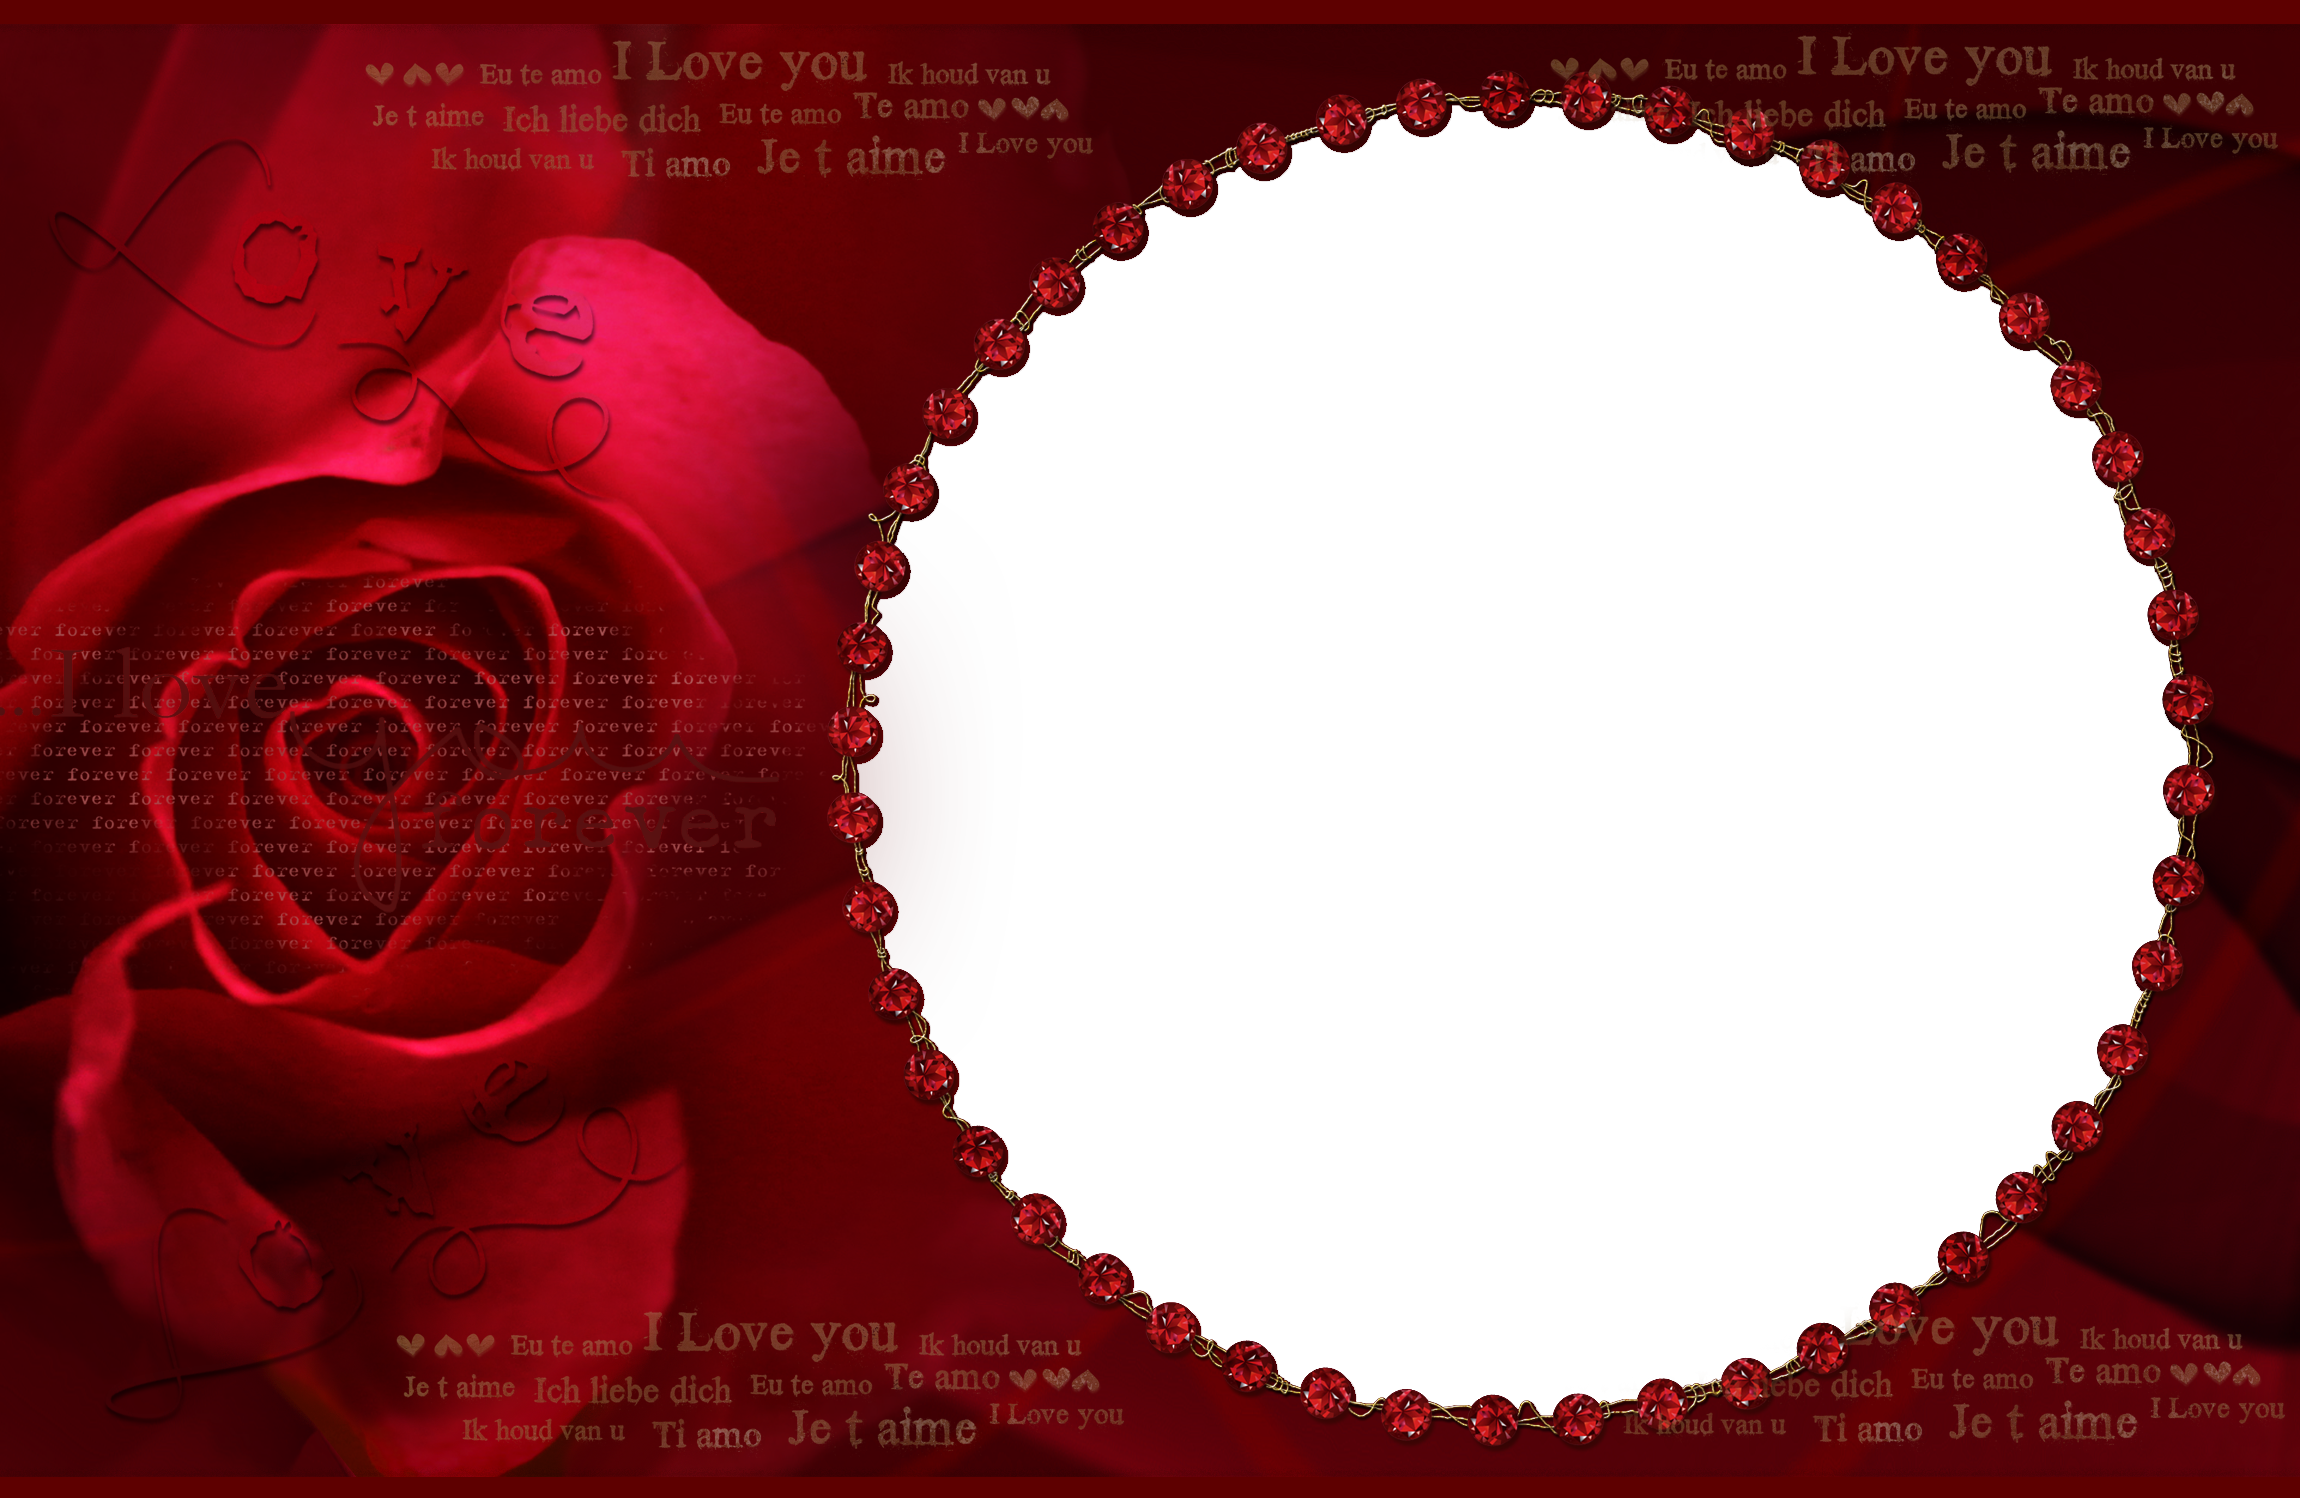 Transparent Red Rose Frame In 2020 Rose Frame Red Roses Framed Wallpaper